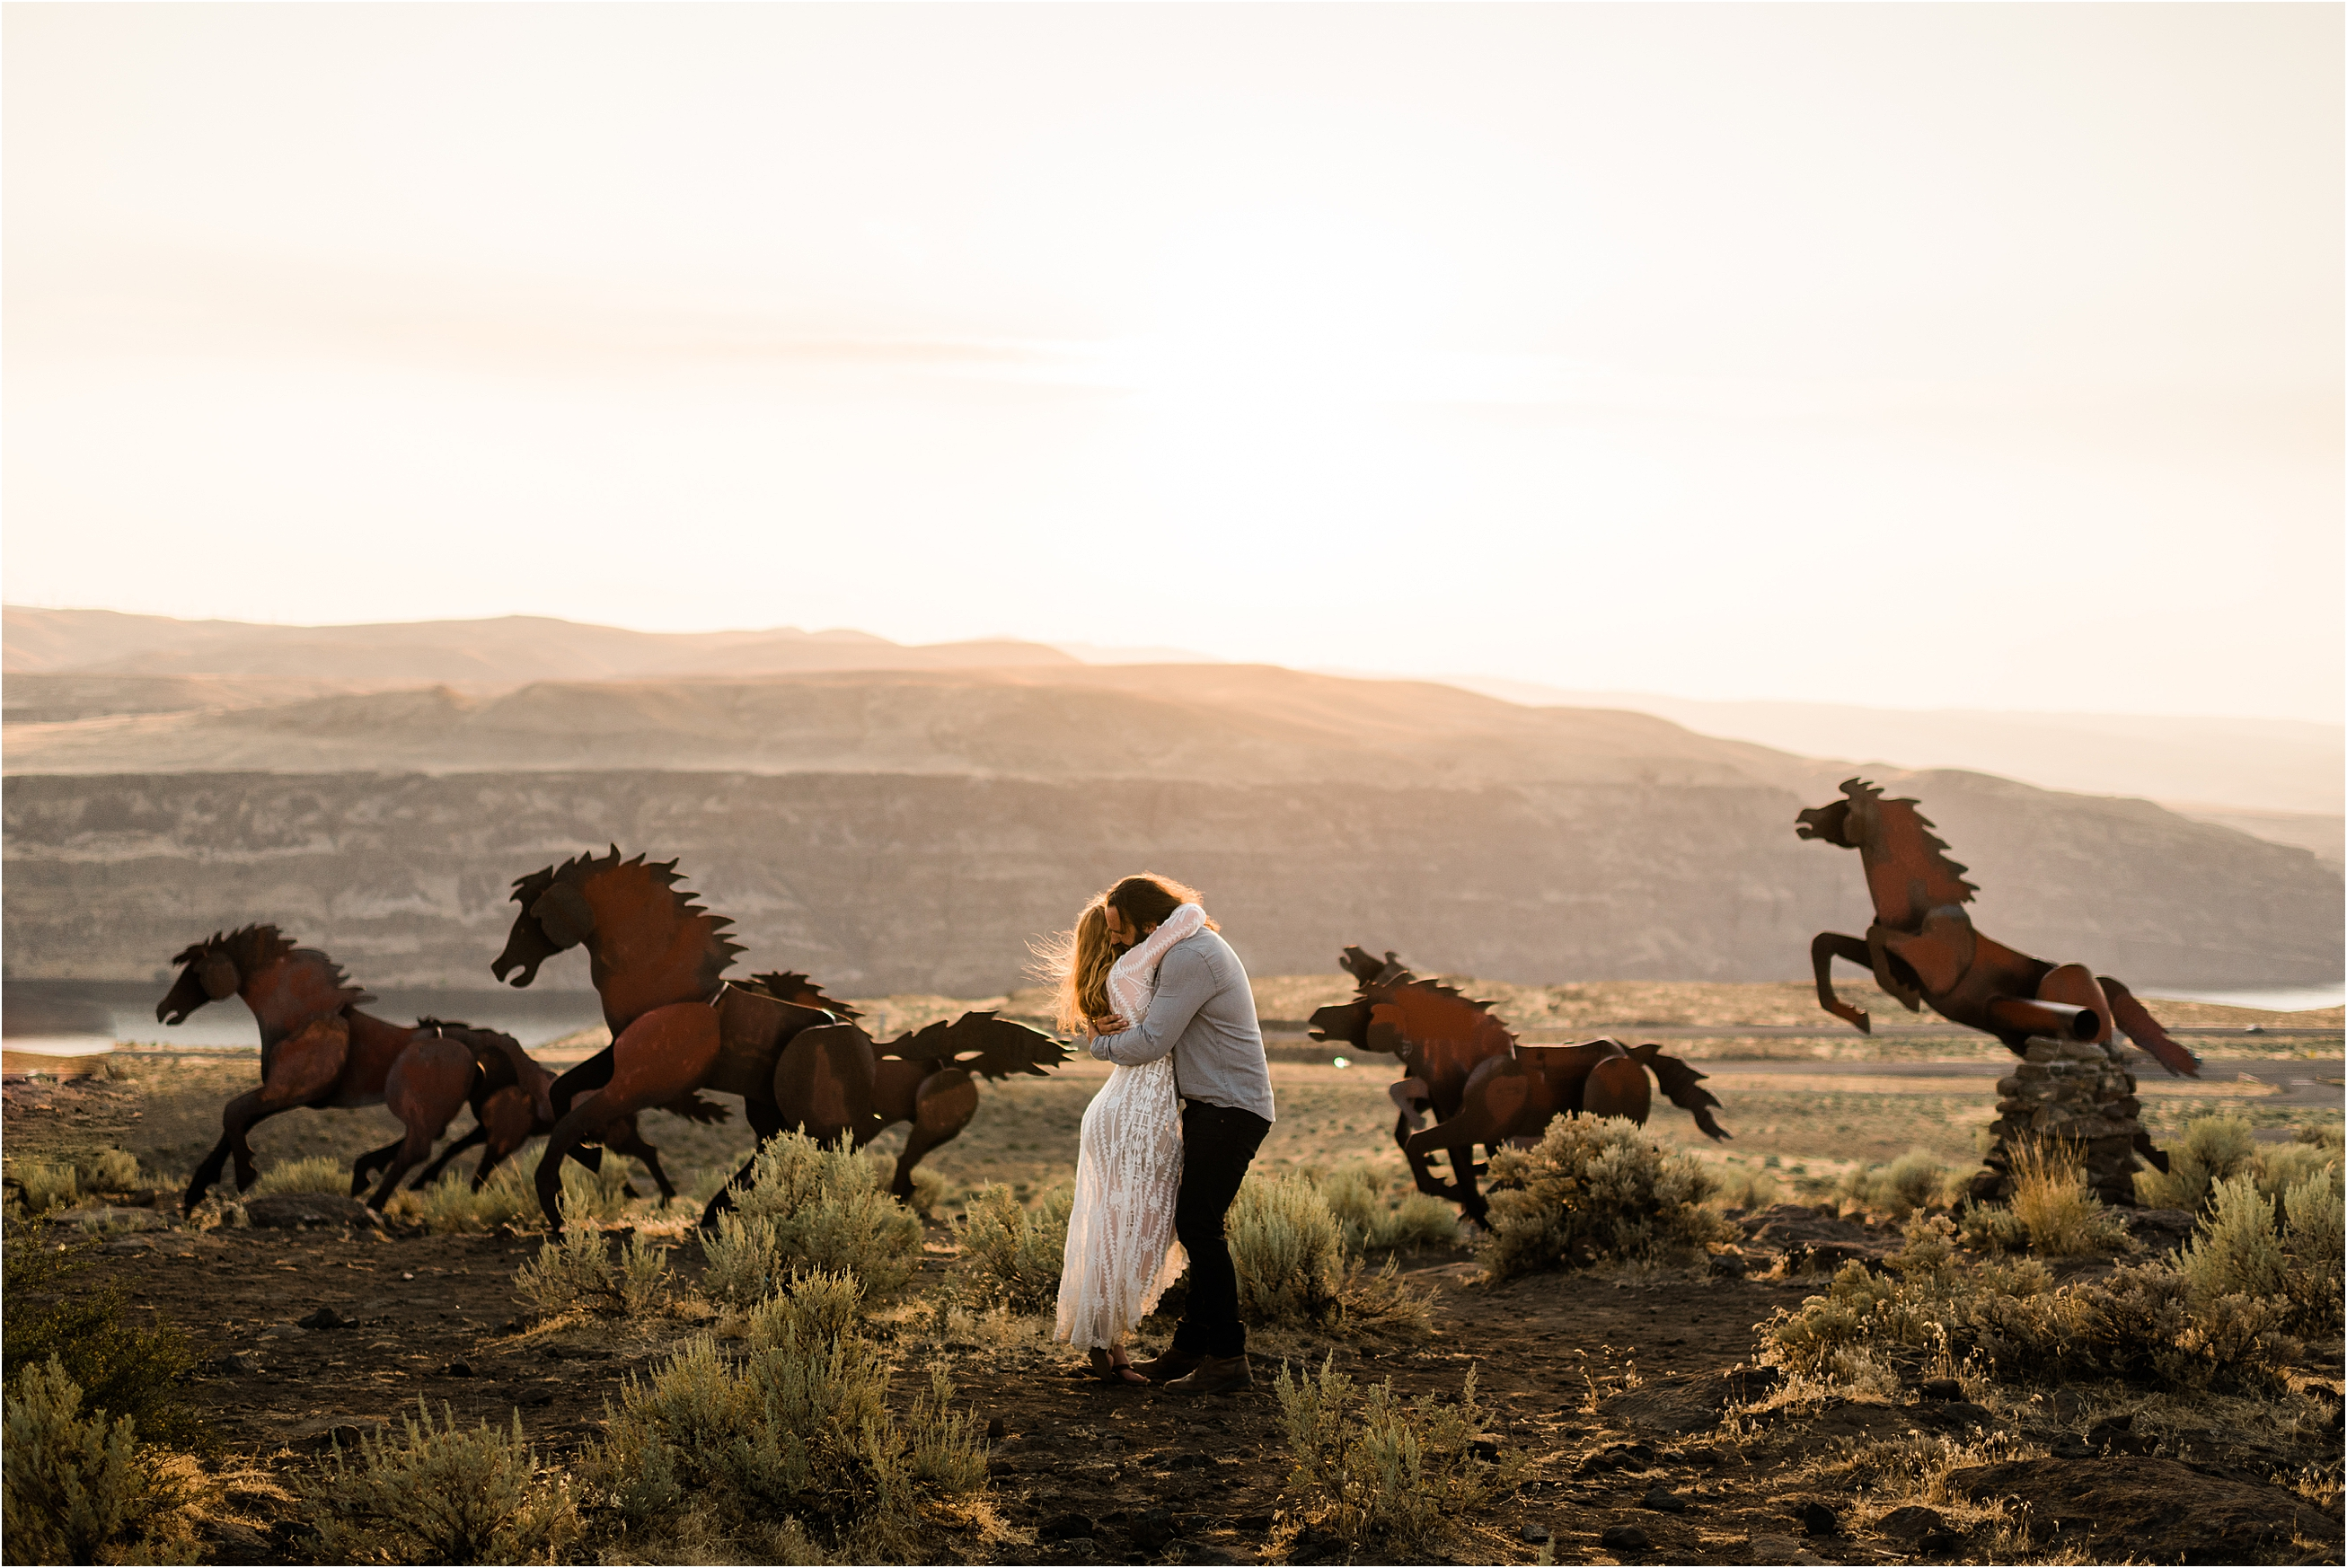 Caitlin & Tarnell at the Wild Horse Monument in Vantage, Washington. Elopement by Forthright Photo.